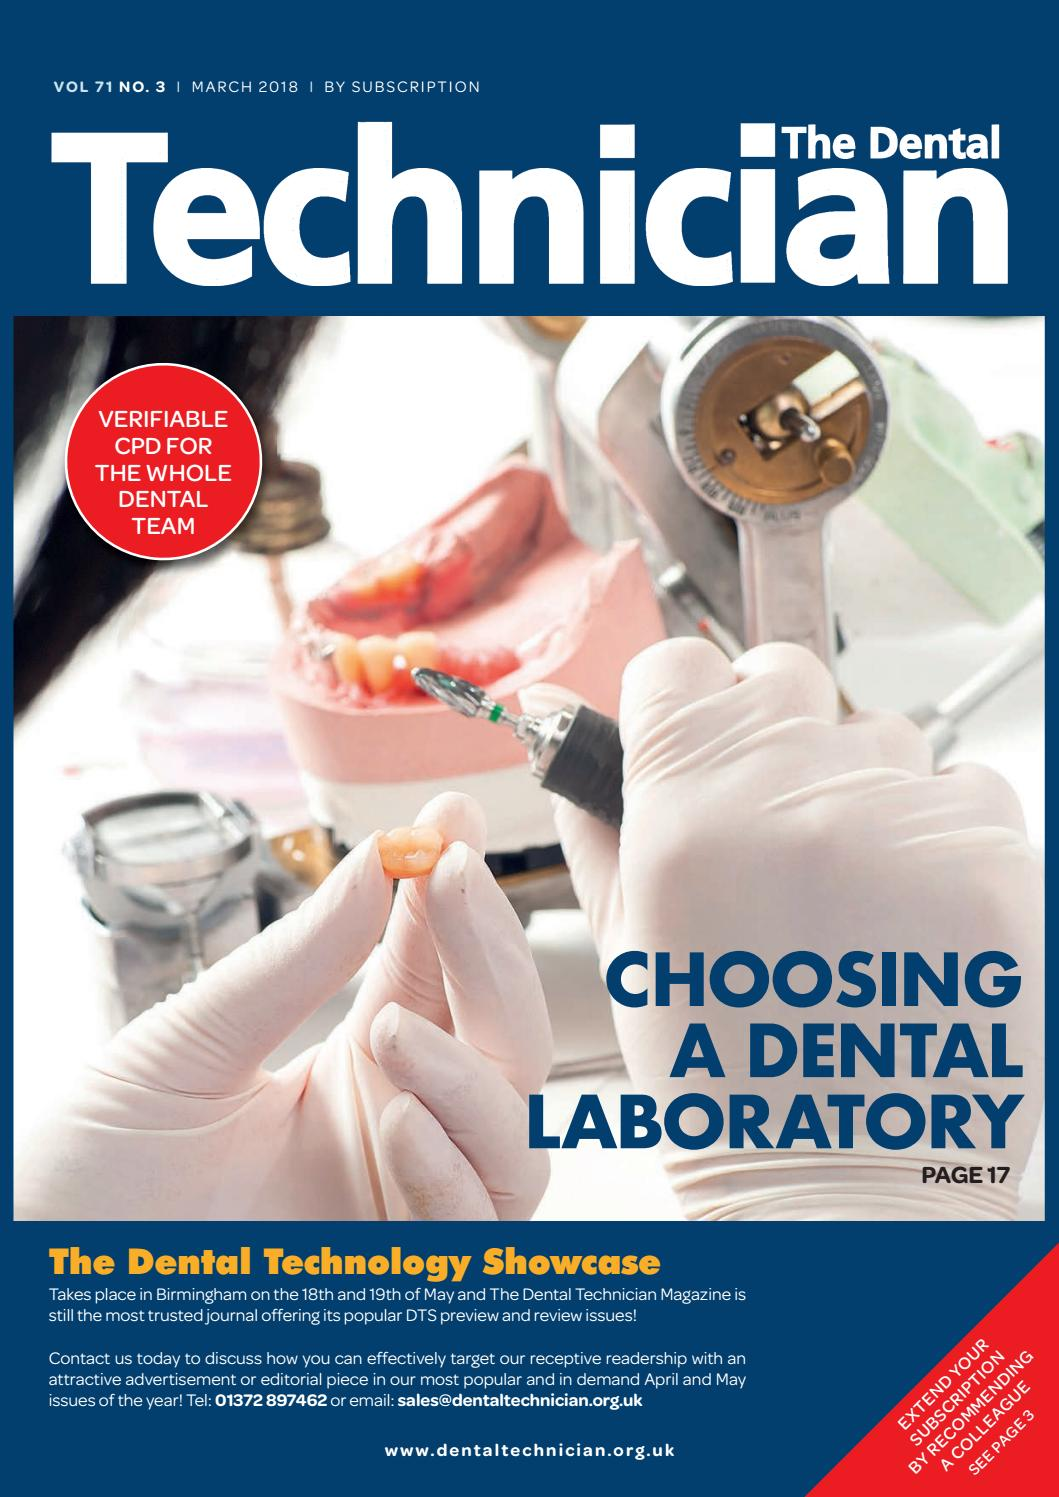 The Dental Technician Magazine March 2018 by The Dental Technician Magazine  - issuu